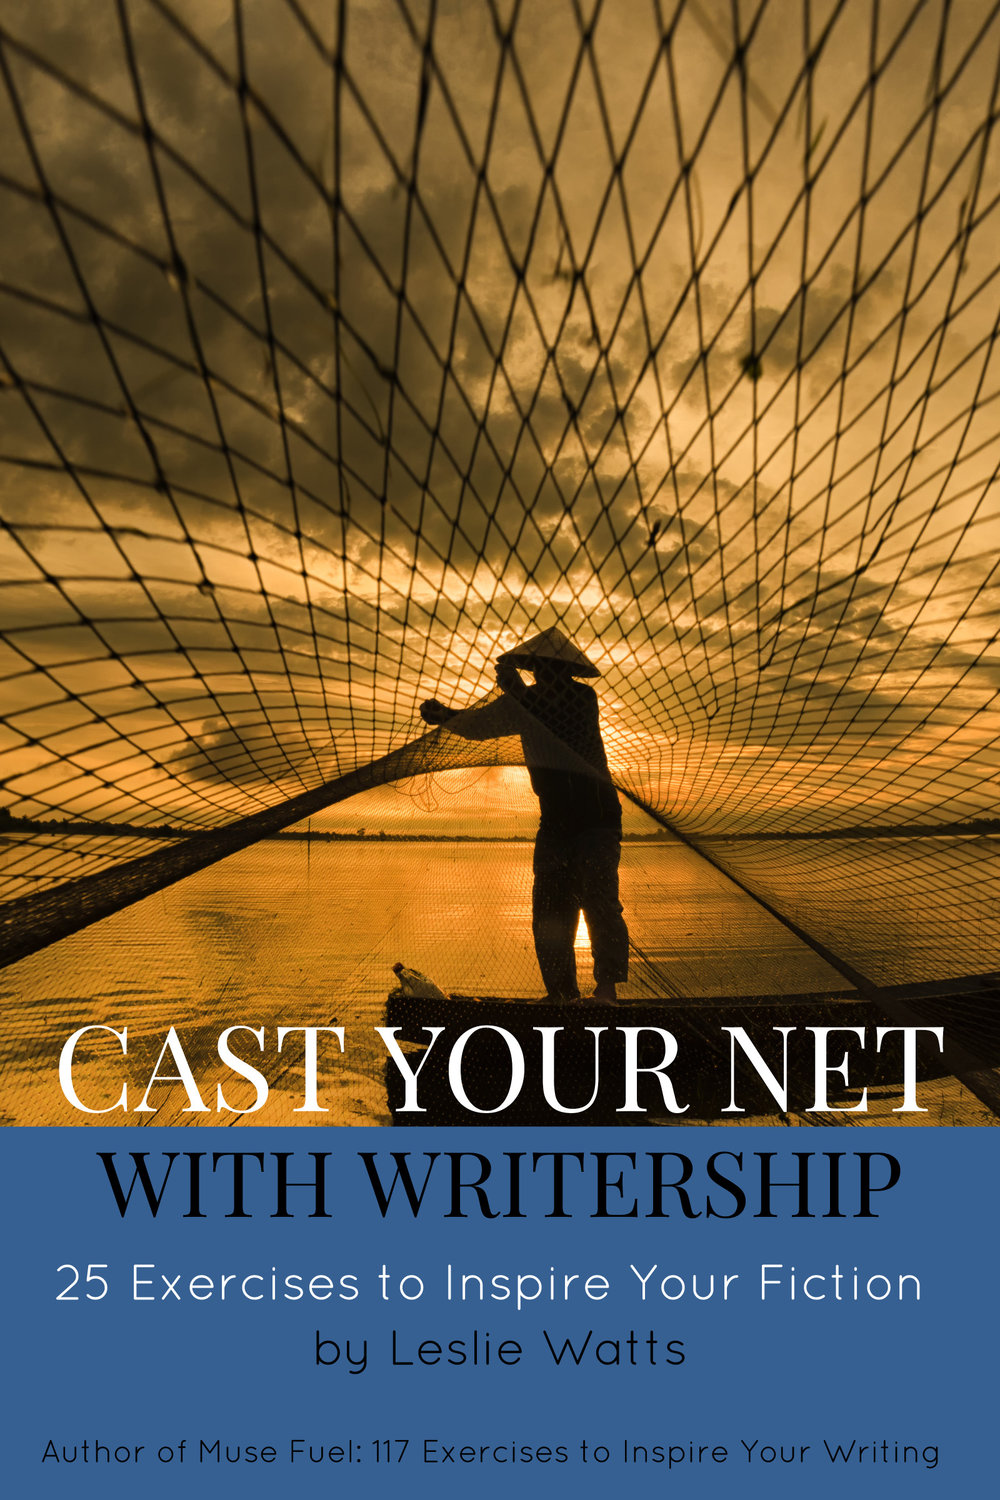 Cast Your Net with Writership: a book of 25 exercises to inspire your fiction by Leslie Watts